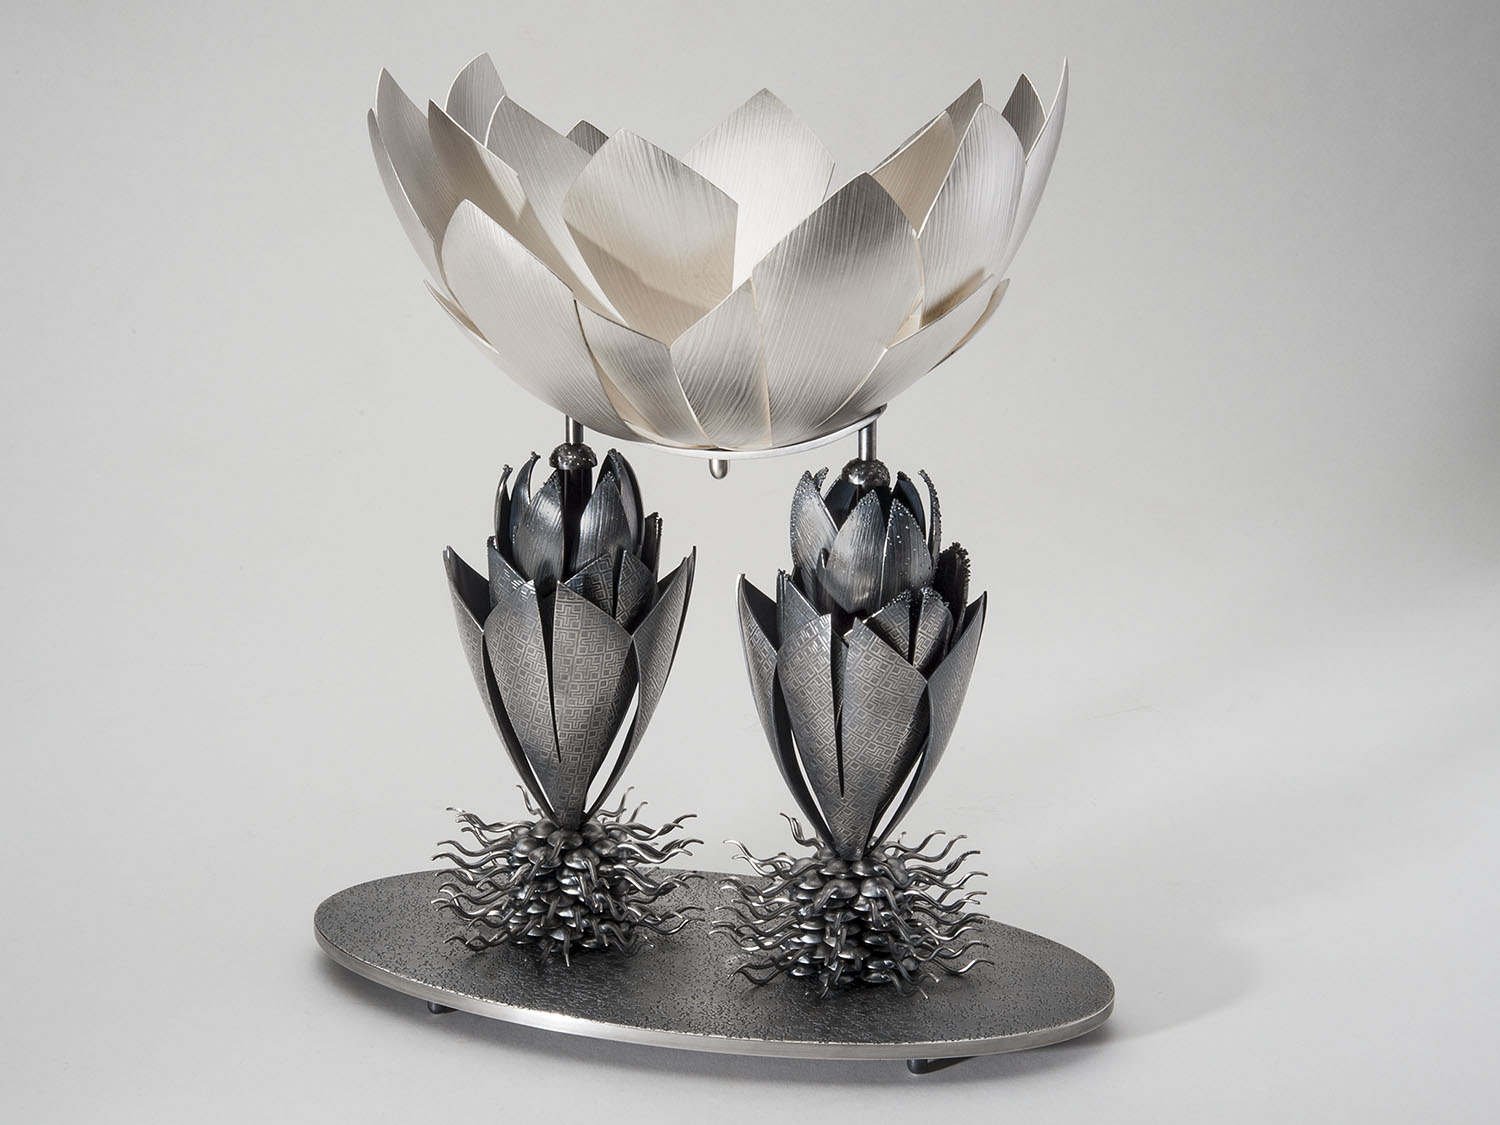 Corbeille  |  2015  |  sterling silver, bronze, silver plate  |  13.5 x 9 x 9 inches